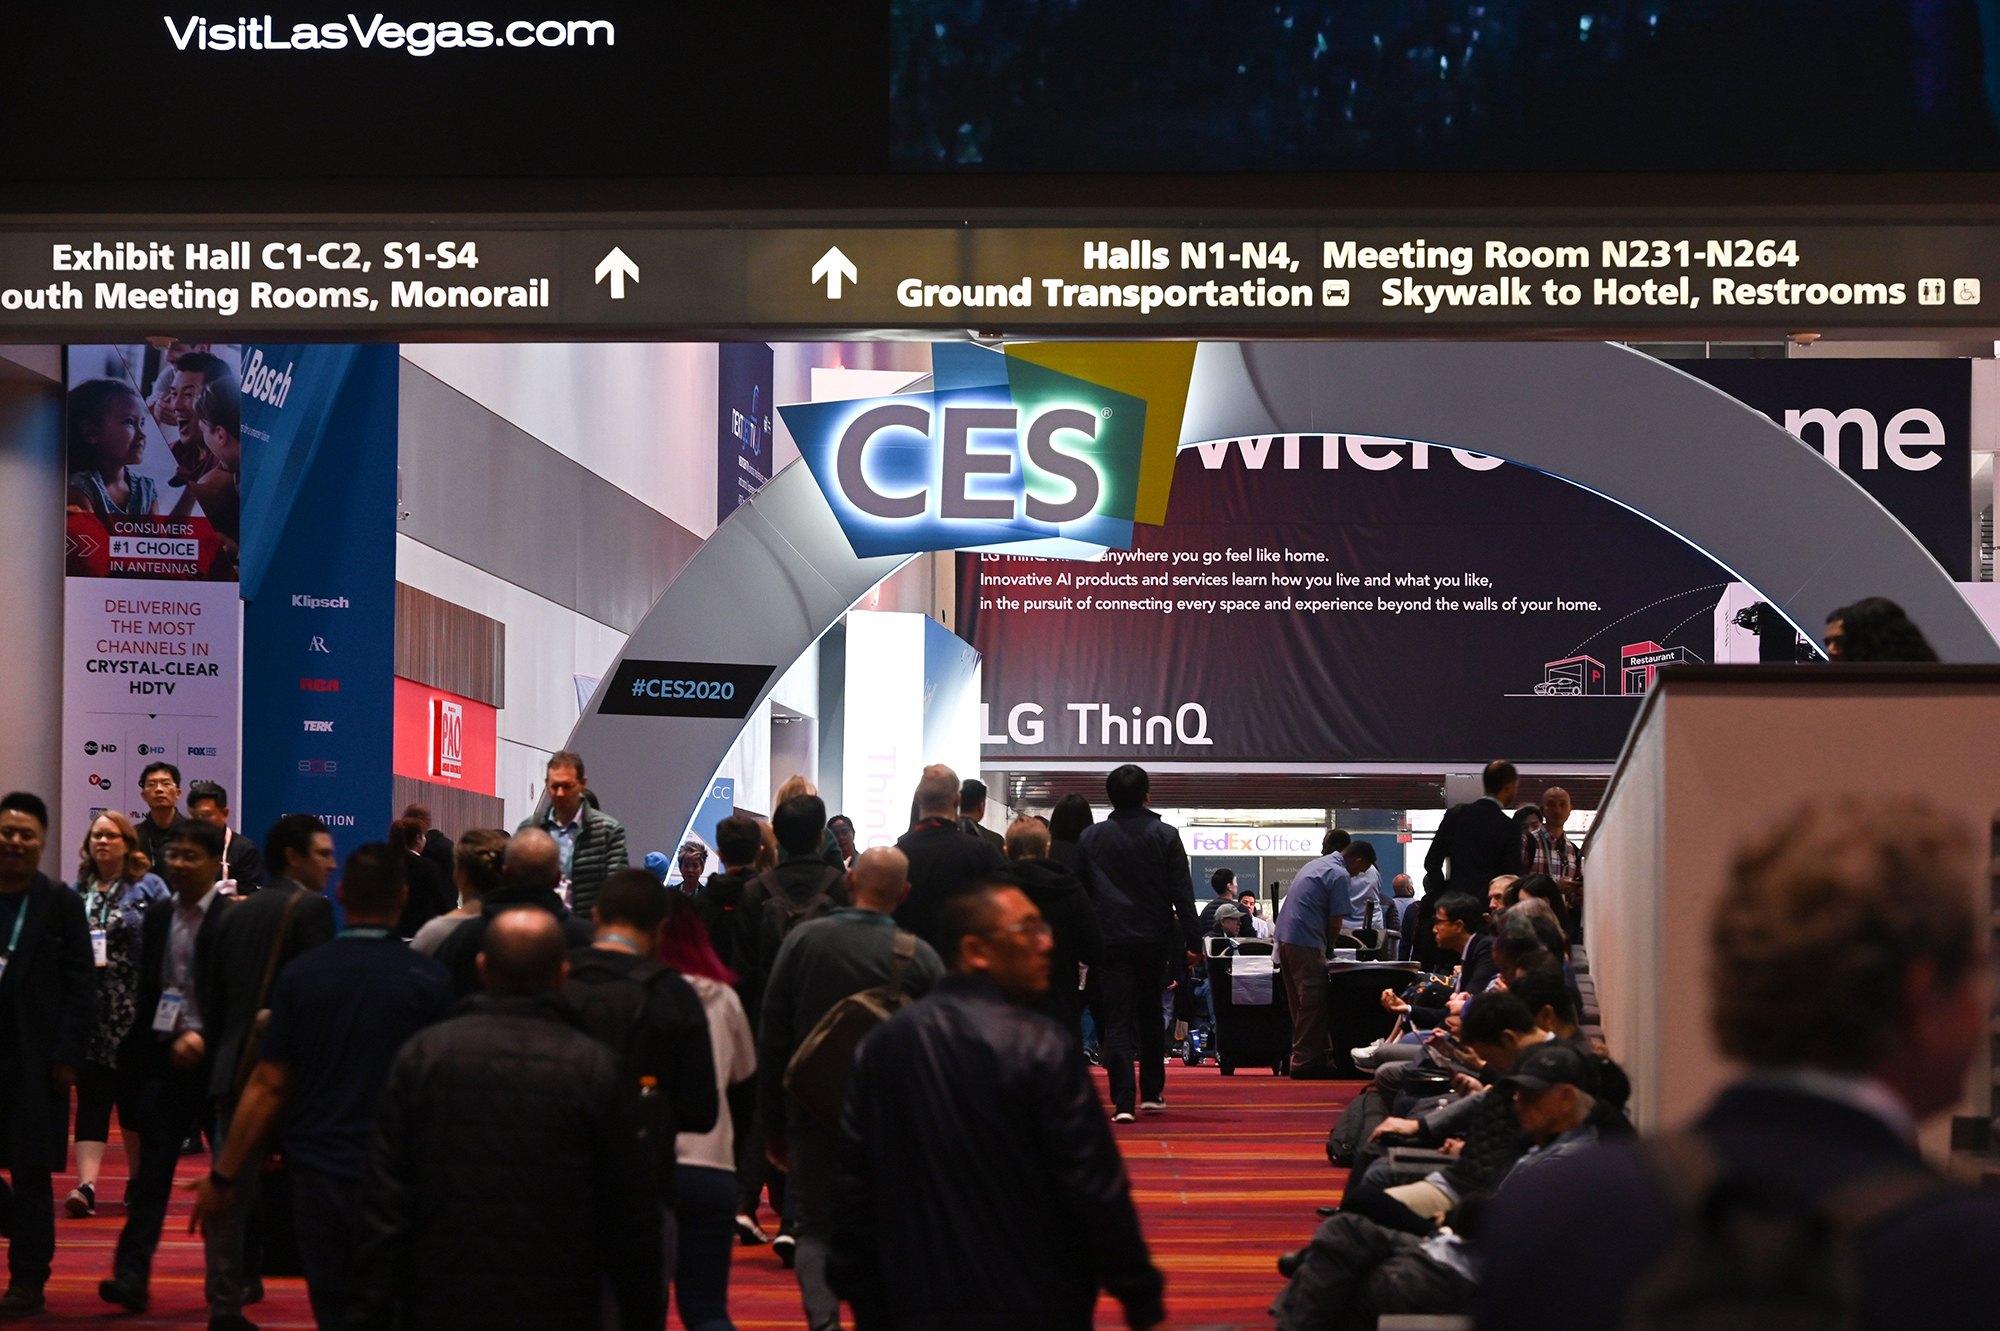 Attendees walk through the Las Vegas Convention Center January 10, 2020 on the final day of the 2020 Consumer Electronics Show (CES) in Las Vegas, Nevada.